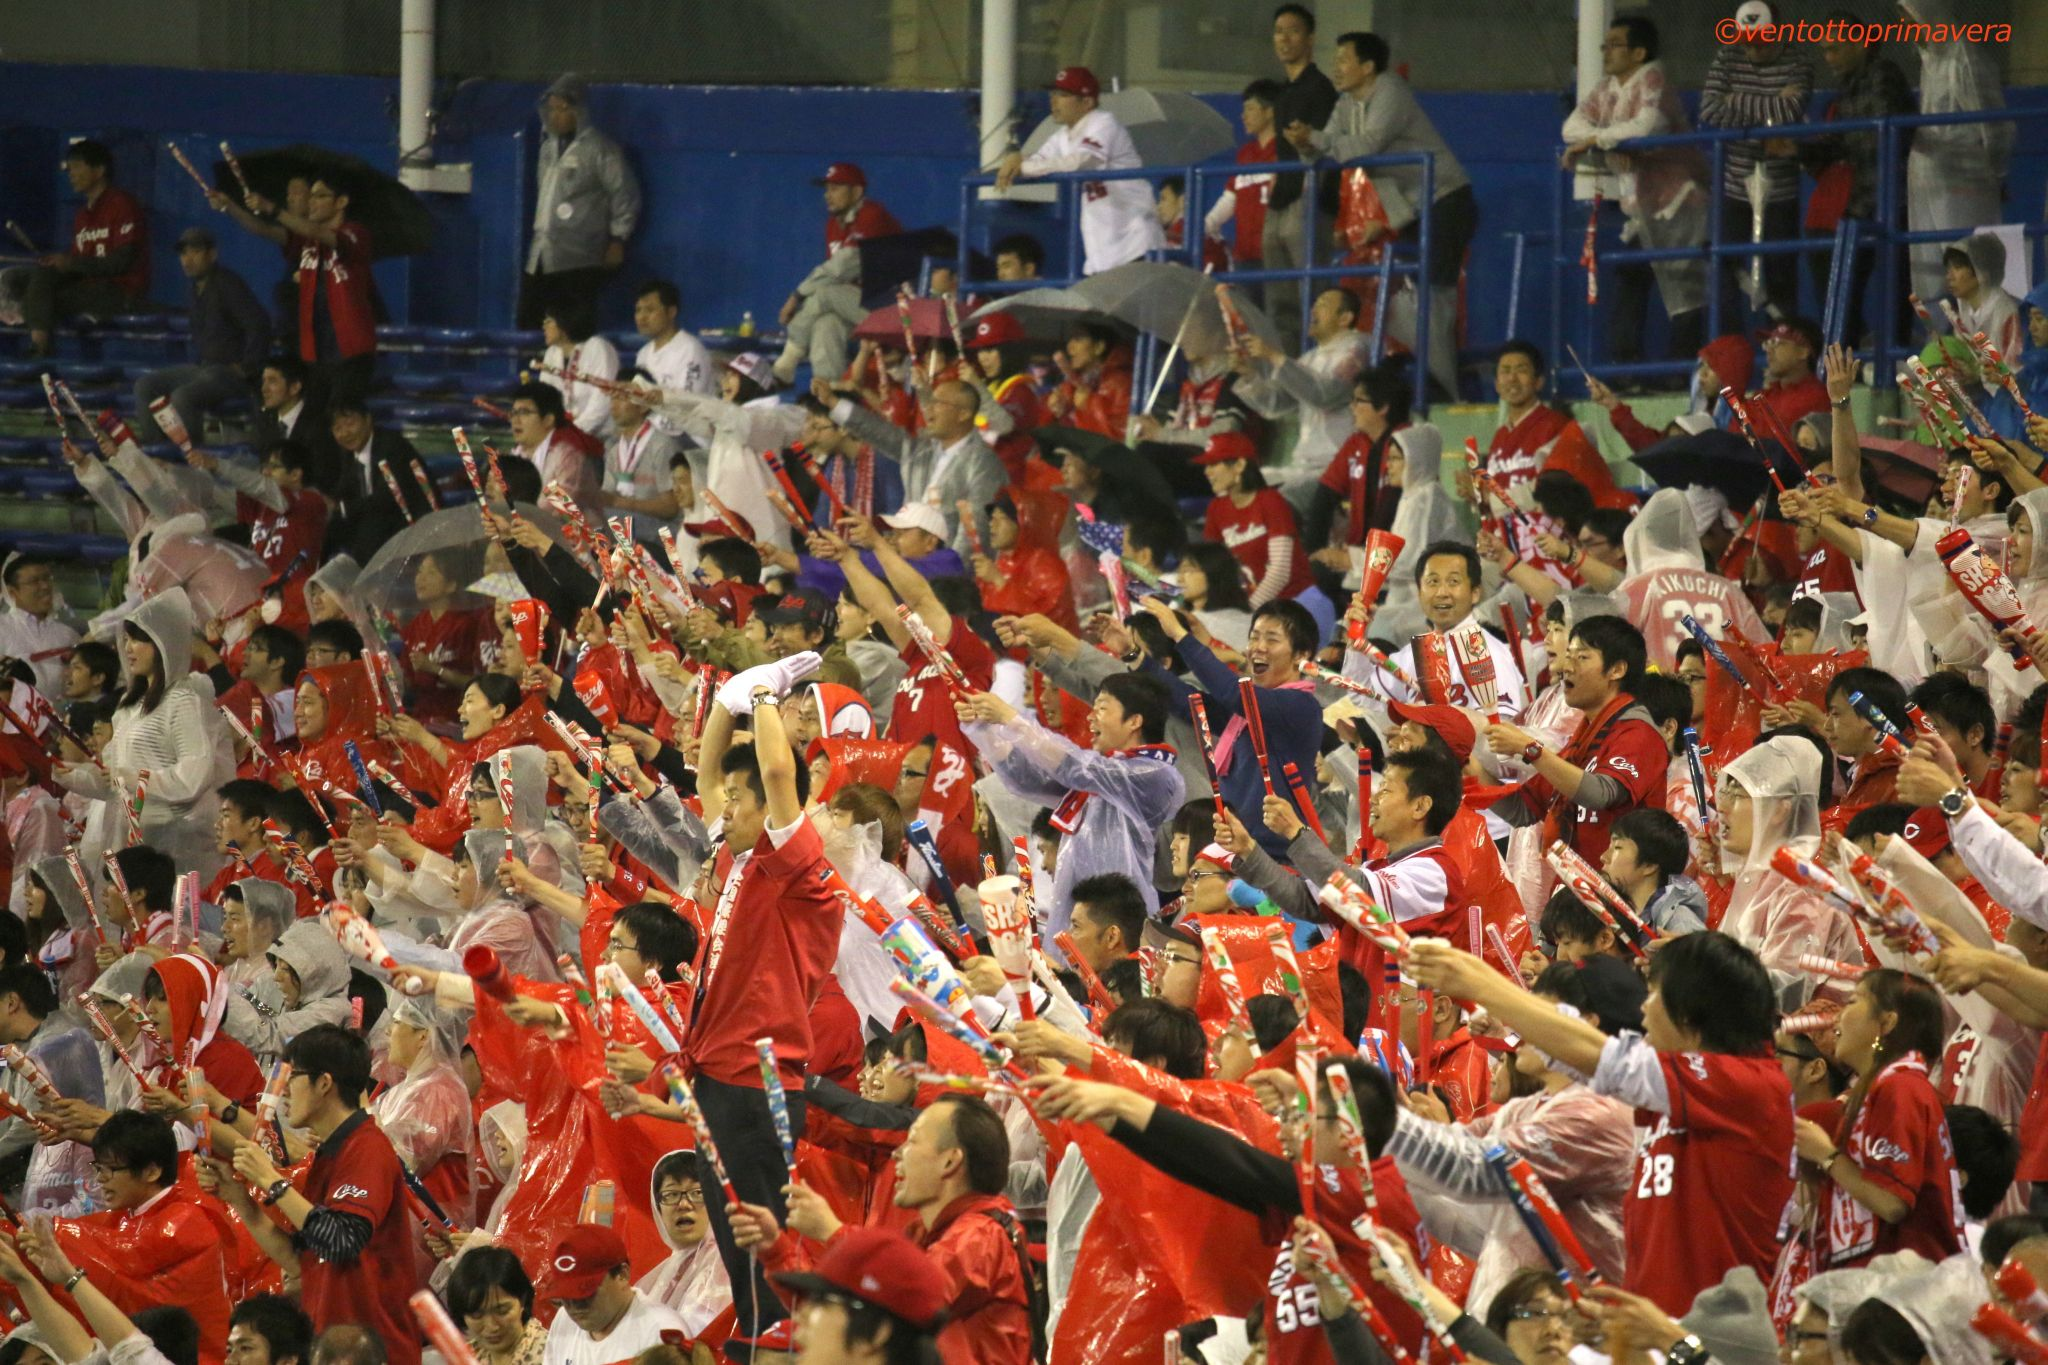 Carp fan in visiter seats of Jingu Stadium, Japan